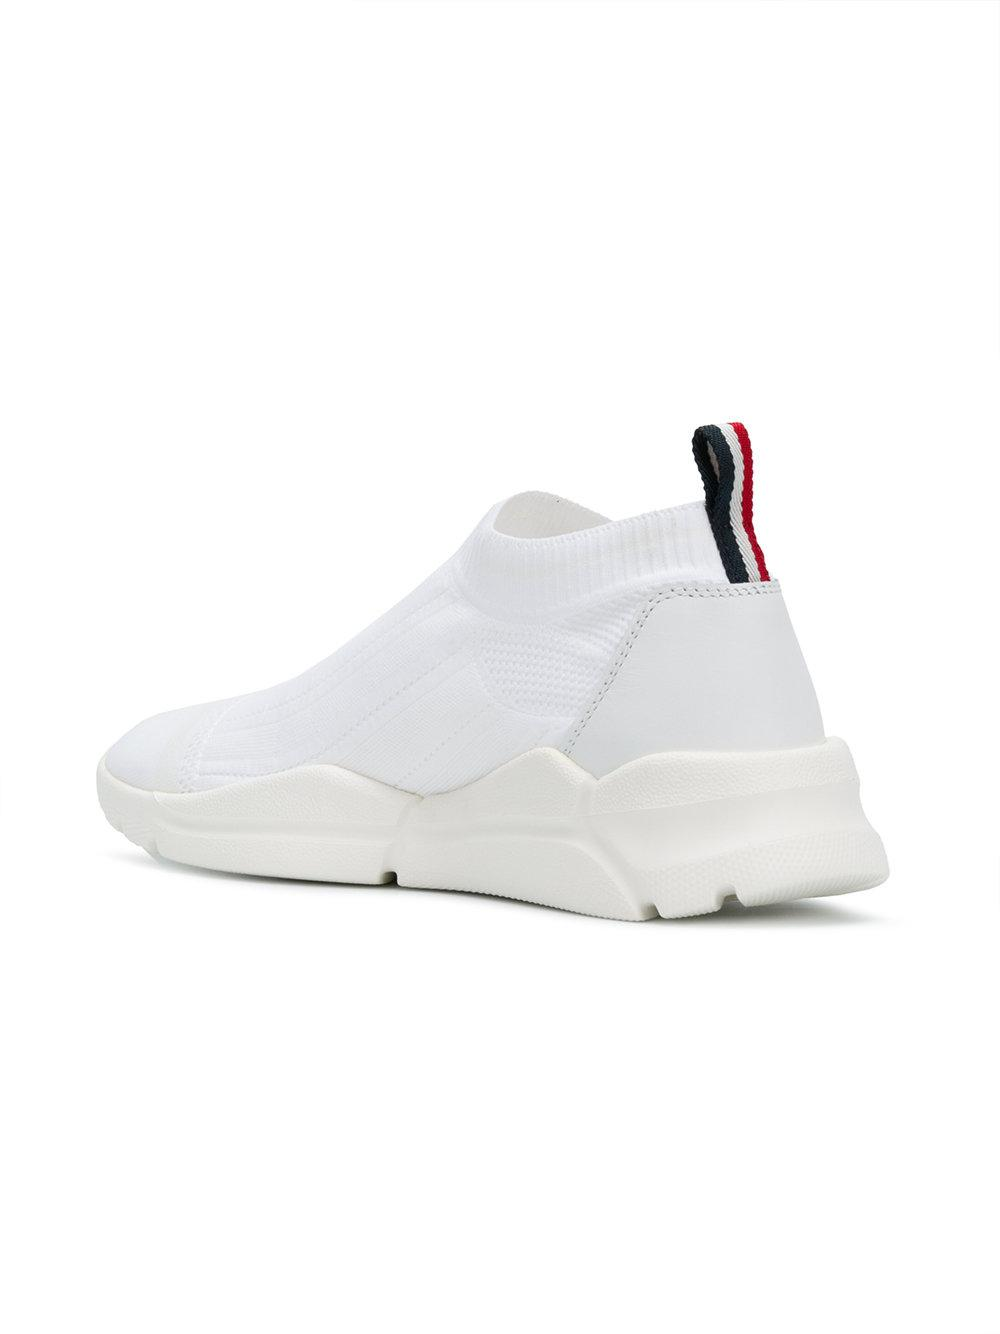 Lyst - Moncler Adon Sneakers in White for Men 4fd8d1494f5